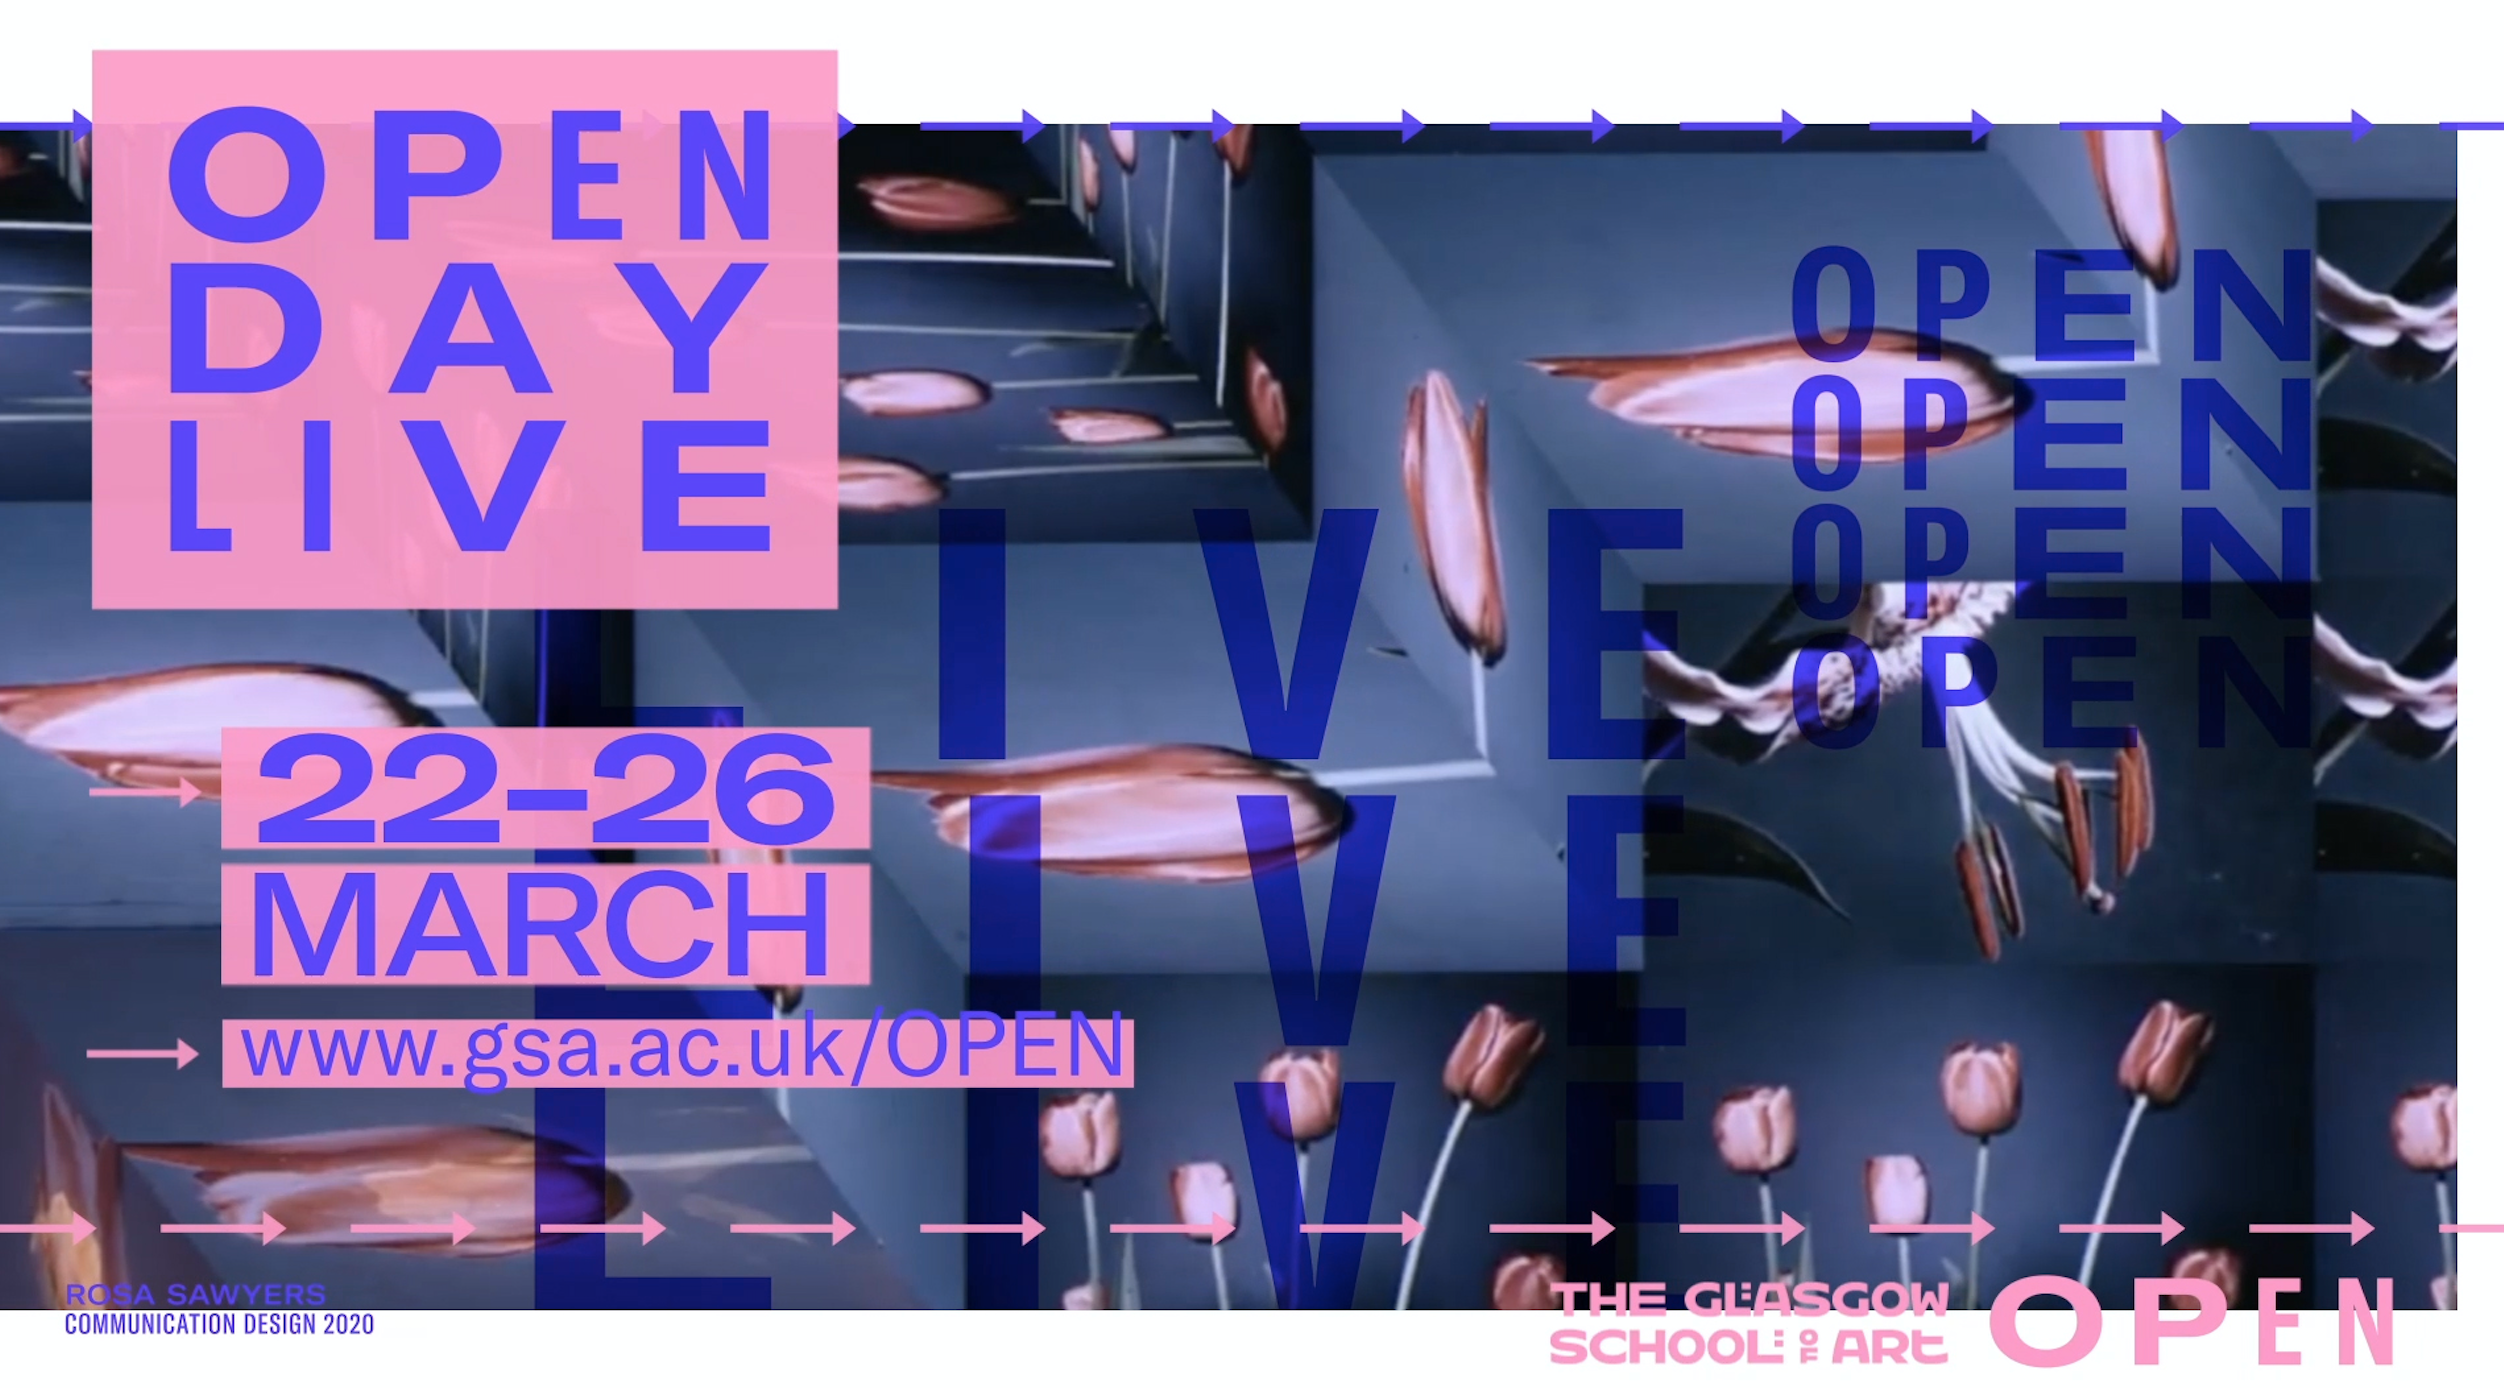 Open Day Live 2021